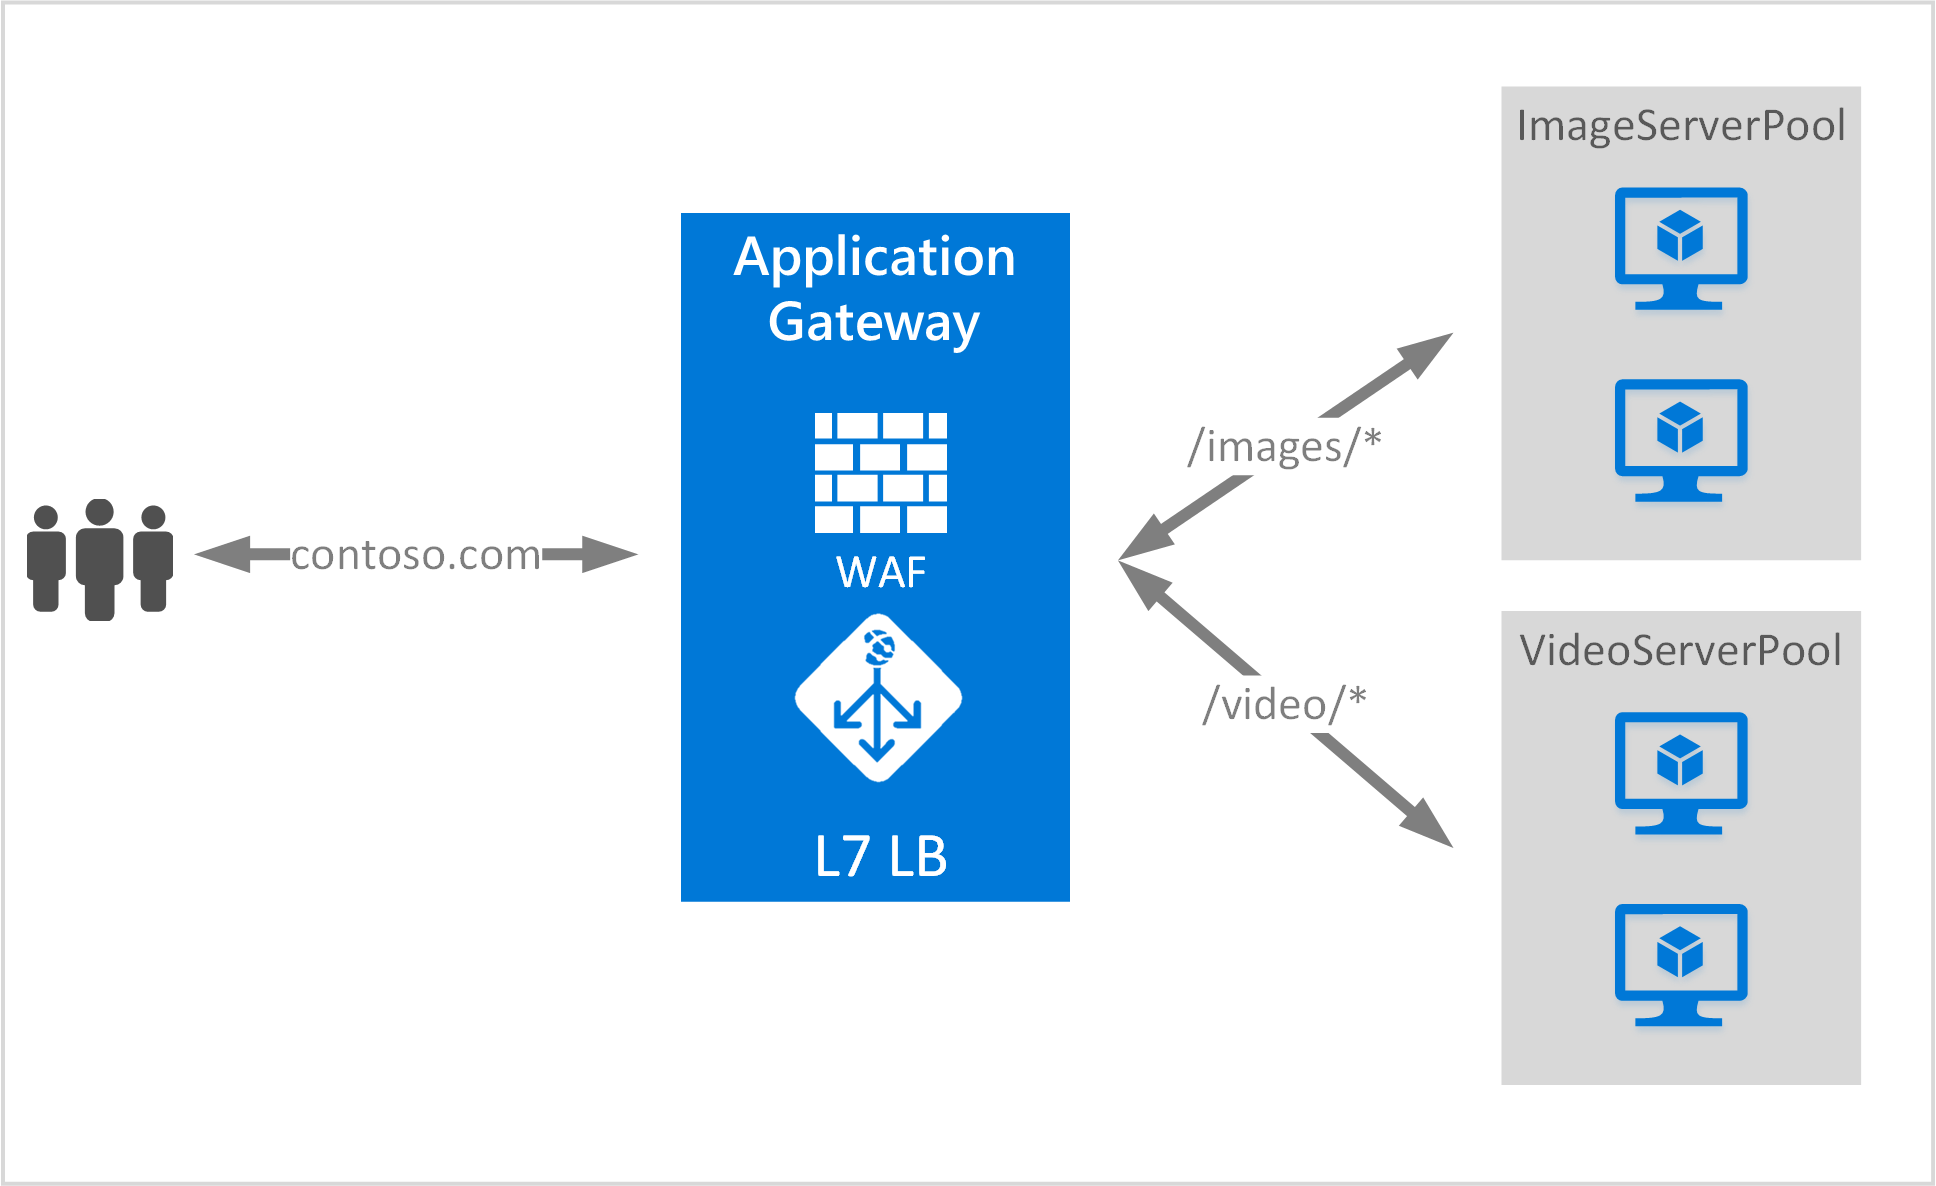 Azure Application Gateway URL-based content routing overview